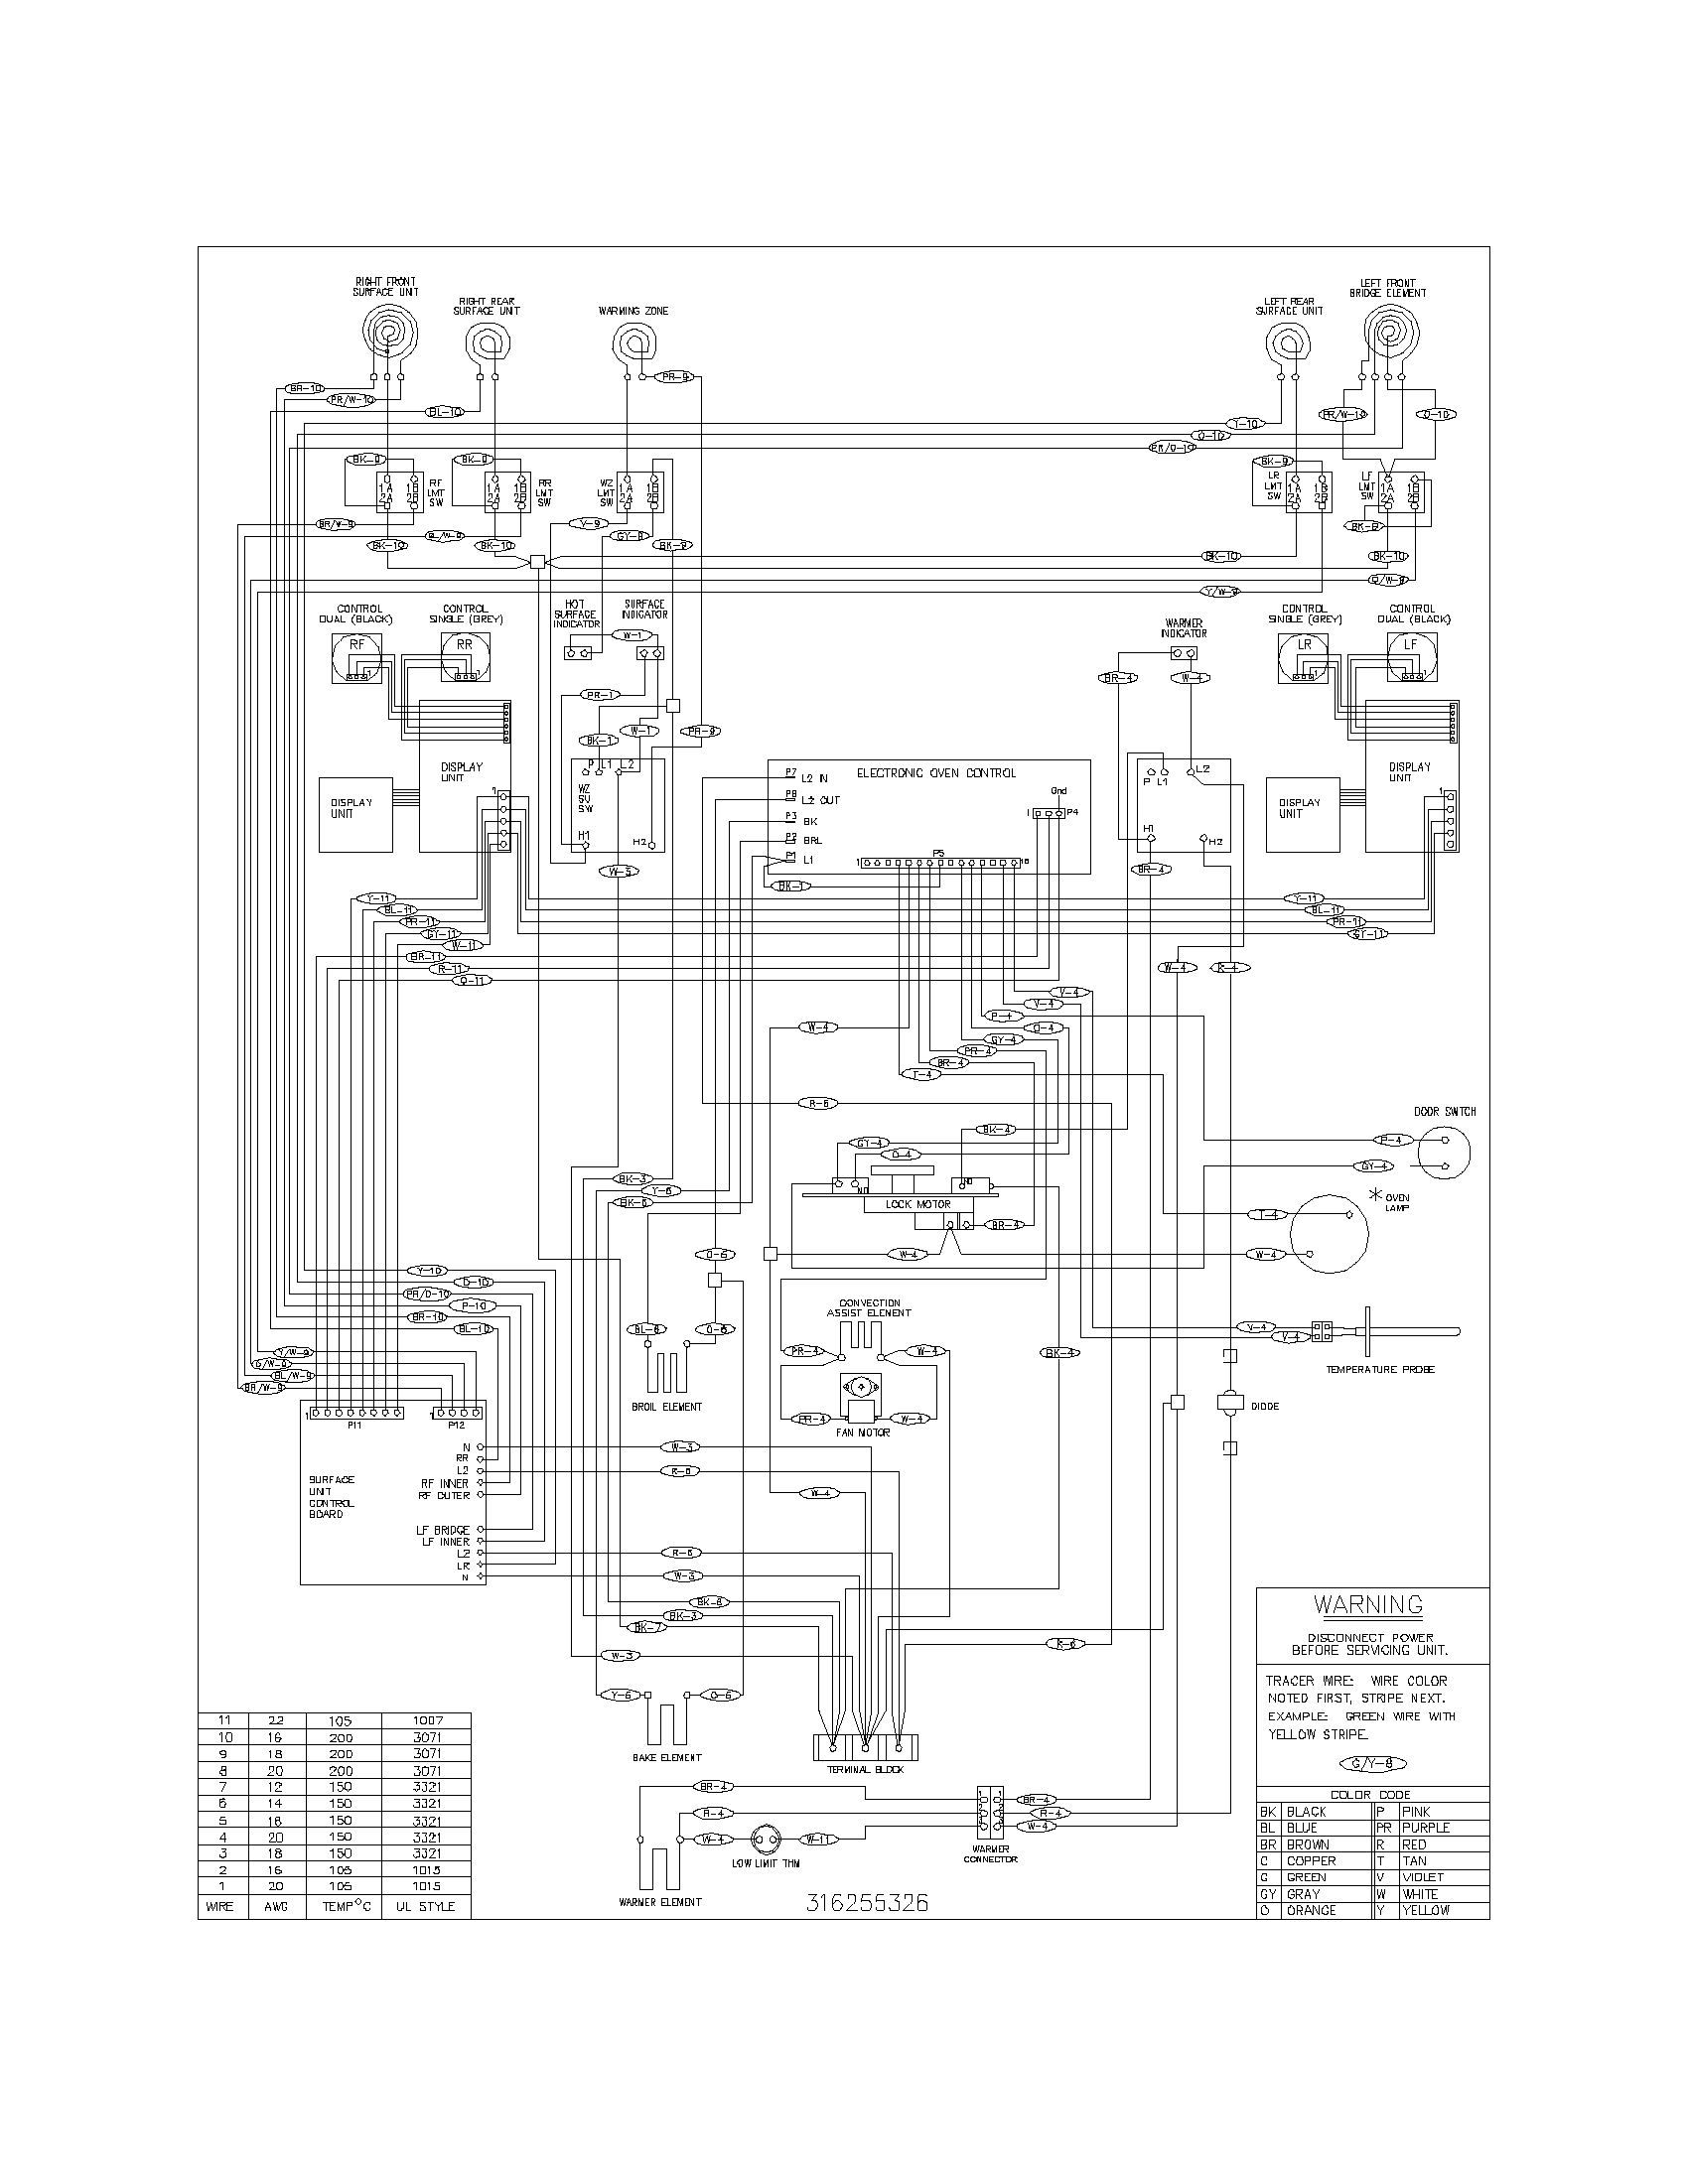 stove switch wiring diagrams   28 wiring diagram images